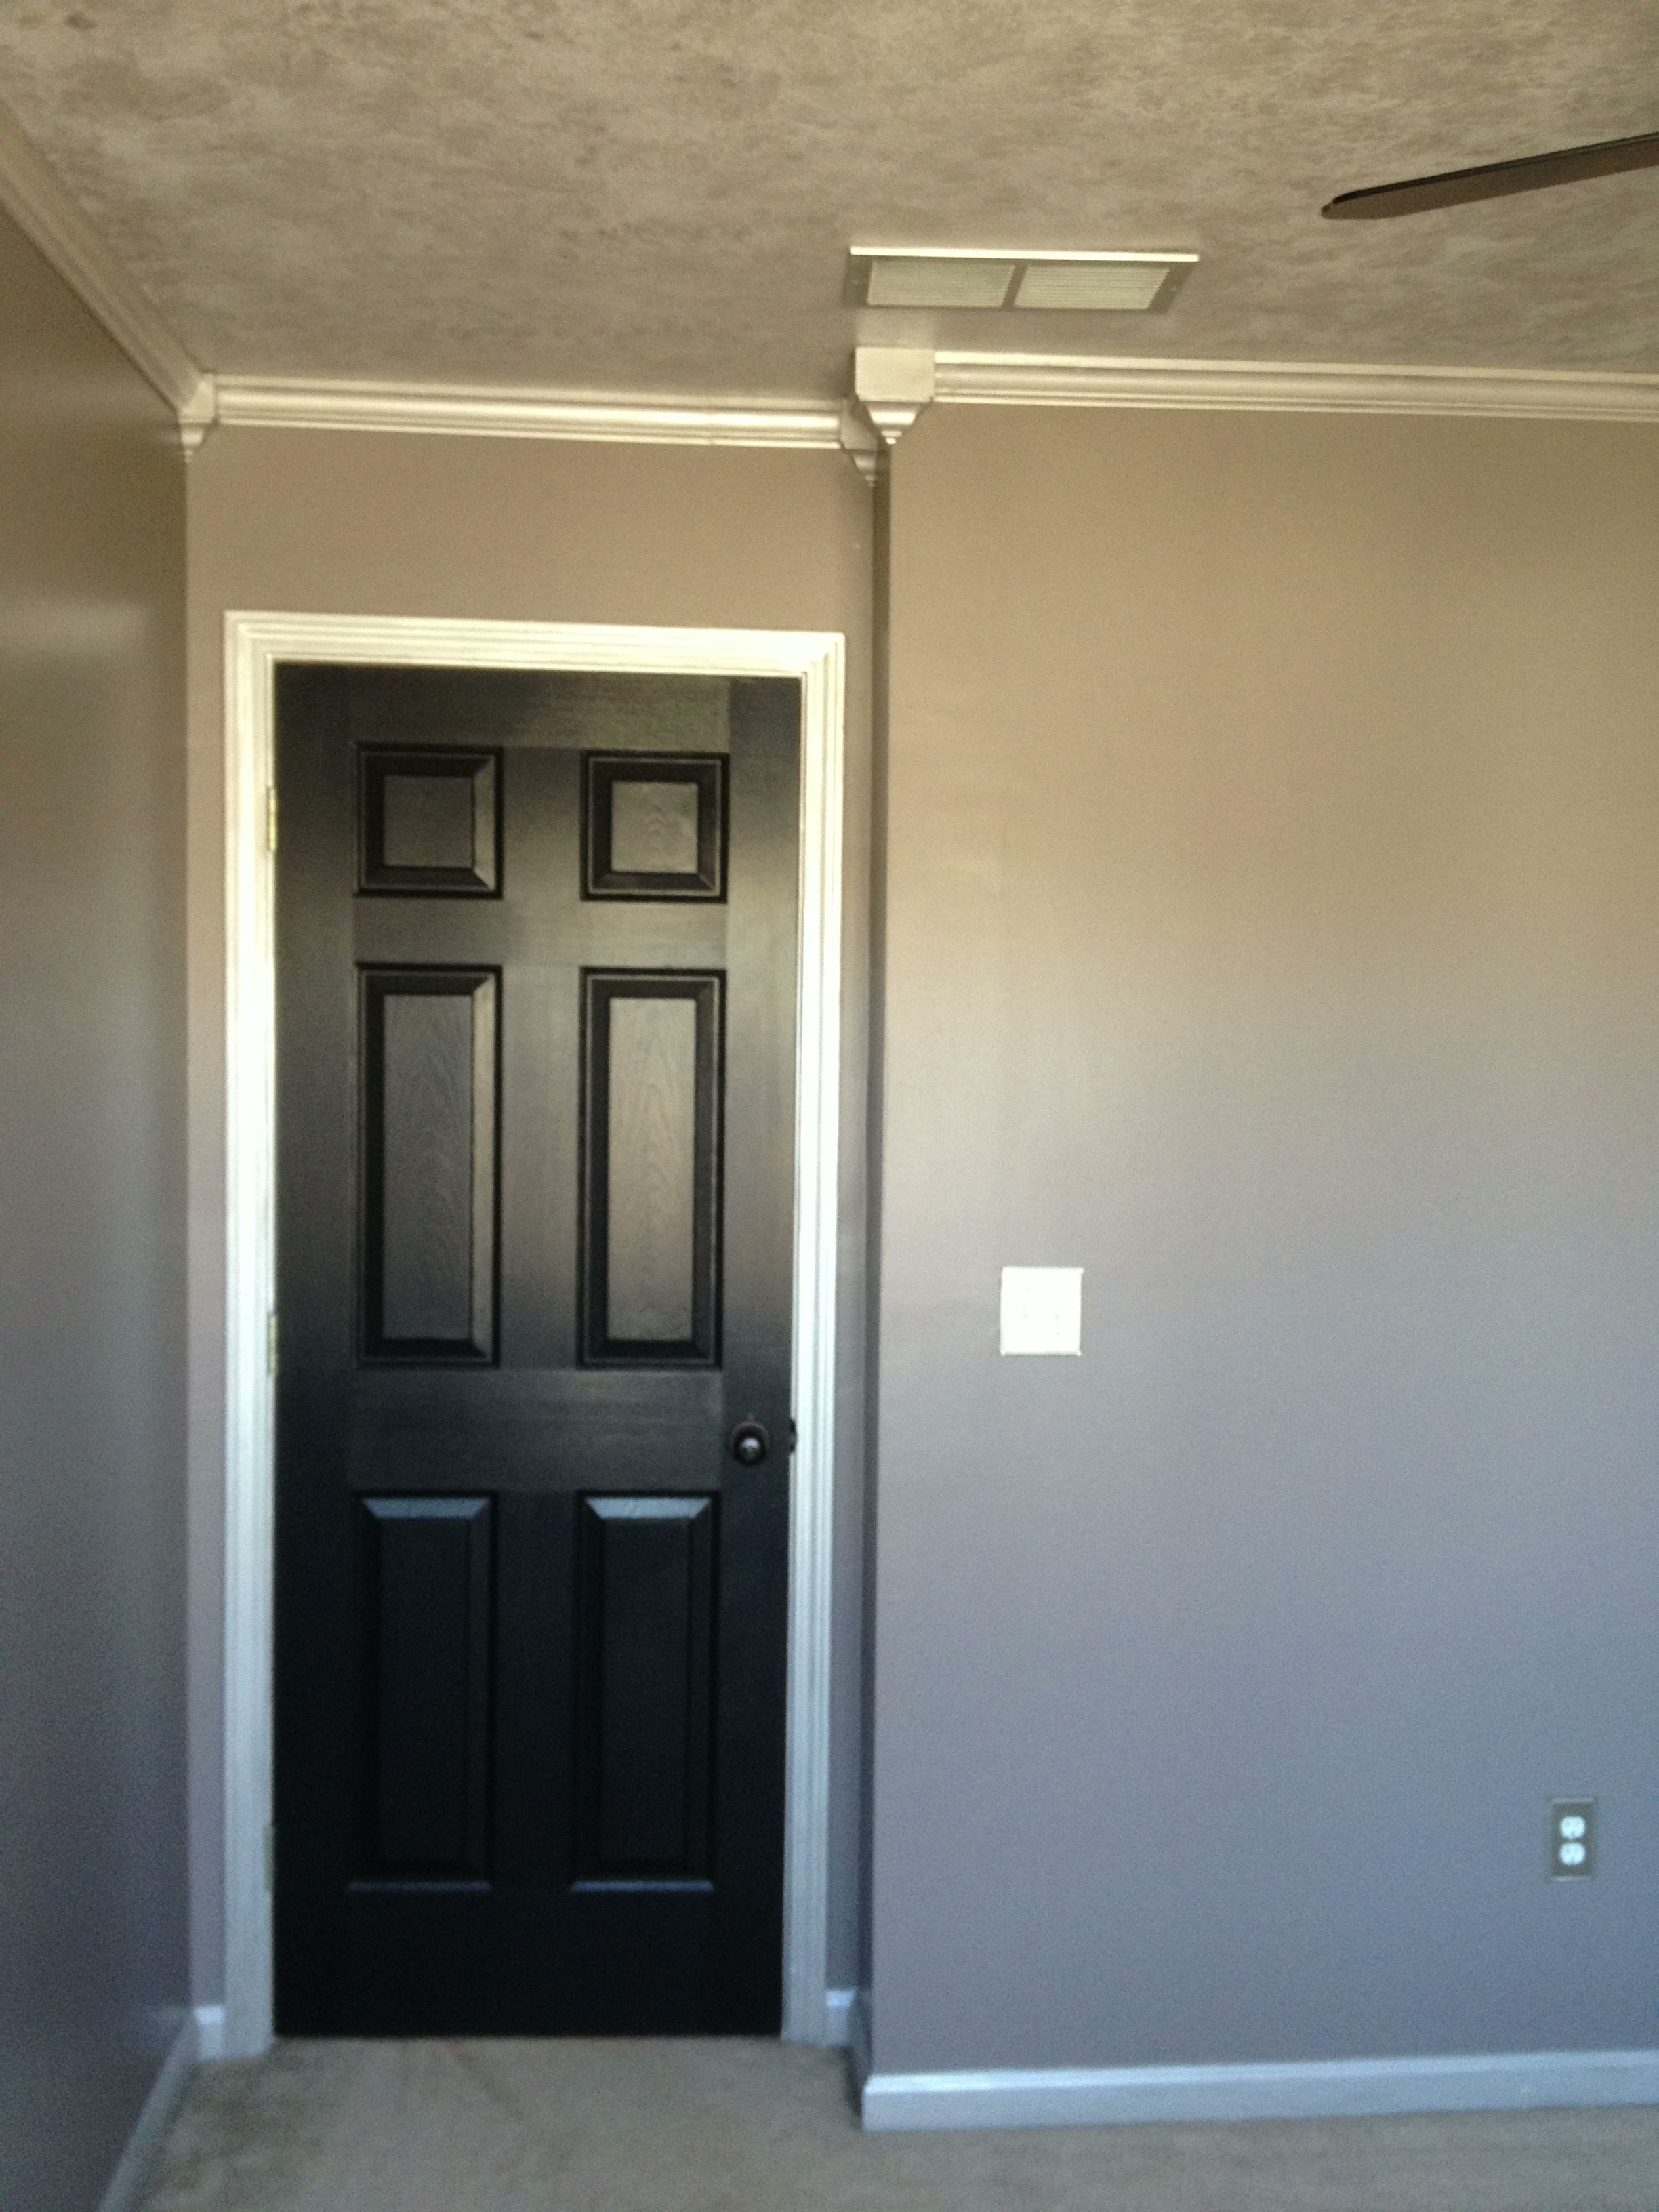 Sherwin Williams Paint, Doors Are Tricorn Black, Walls Are Mink And Base  Coat On Ceiling And Trim Work Is Essential Grey With A Faux Finish Of  Silver Patina ...